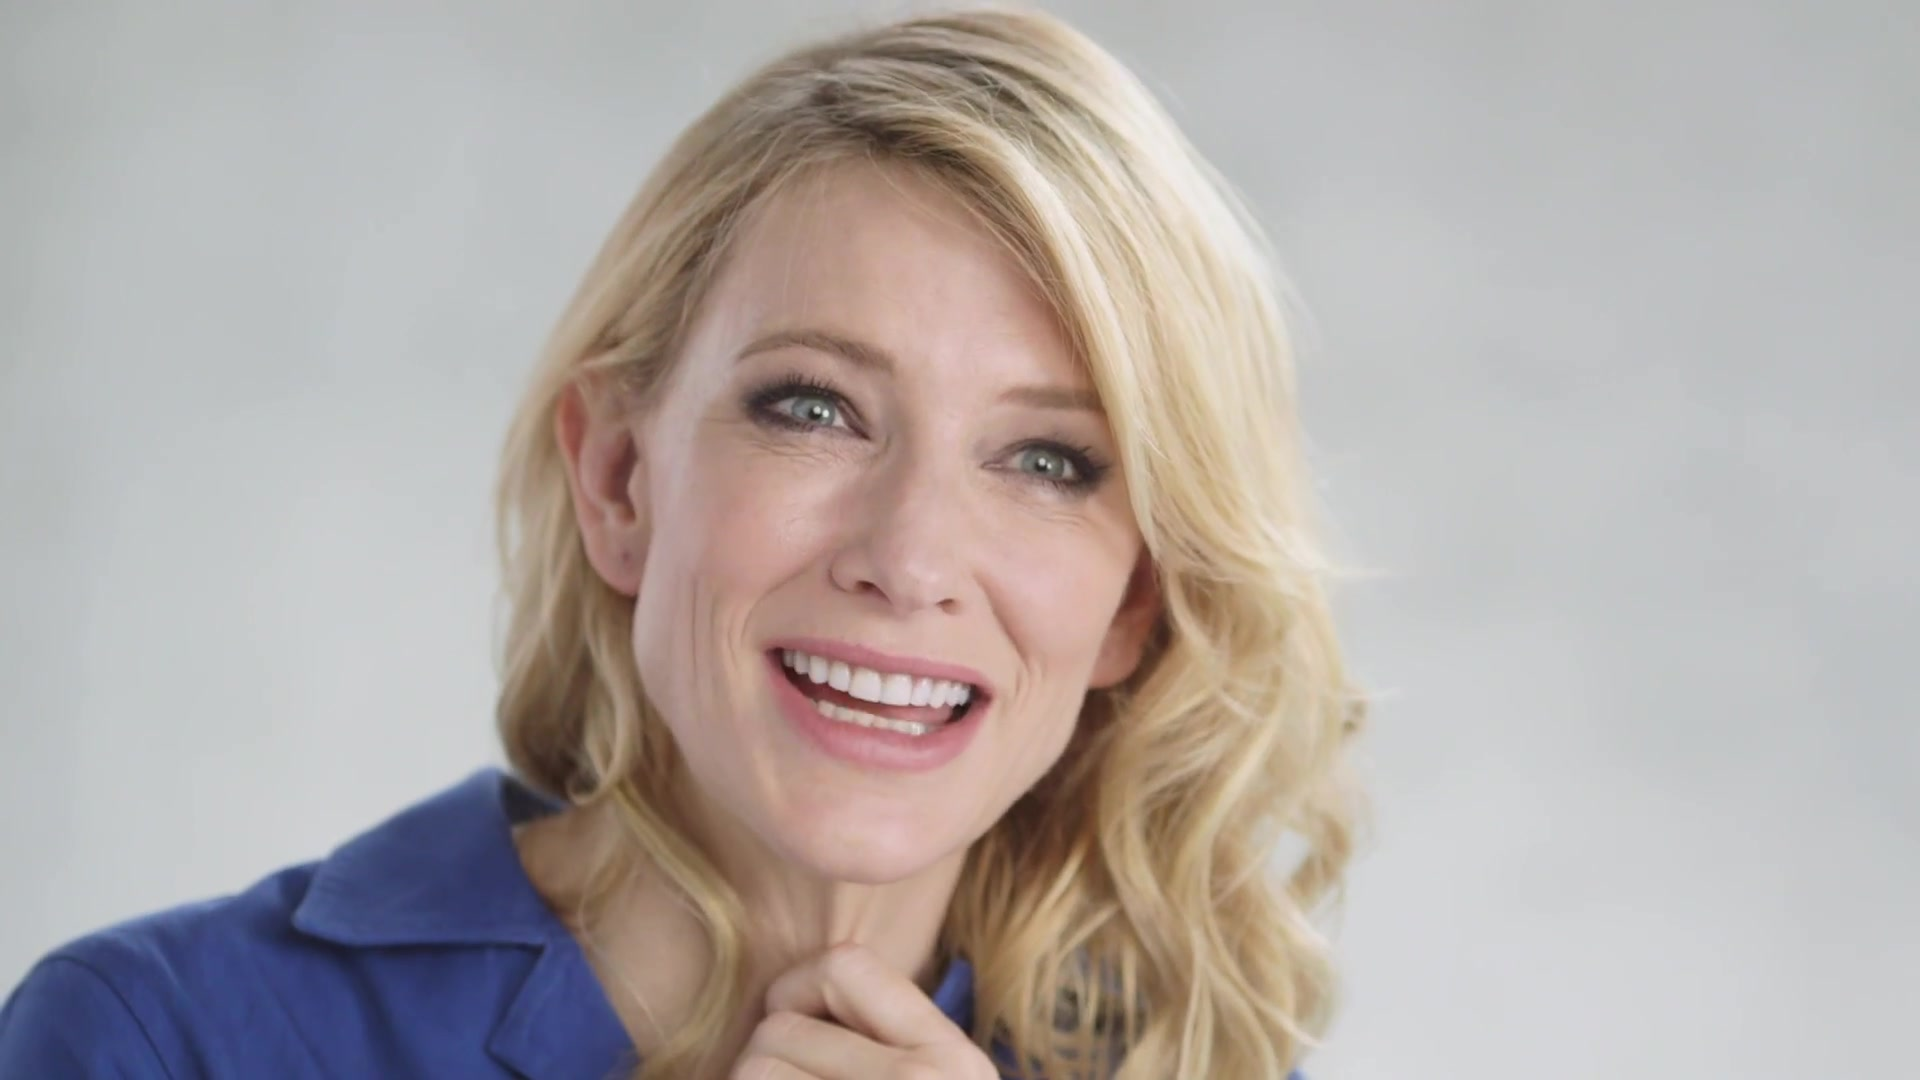 Watch Cate Blanchett Show Off Her Gymnastic Secret Talent & Talks about her Legacy